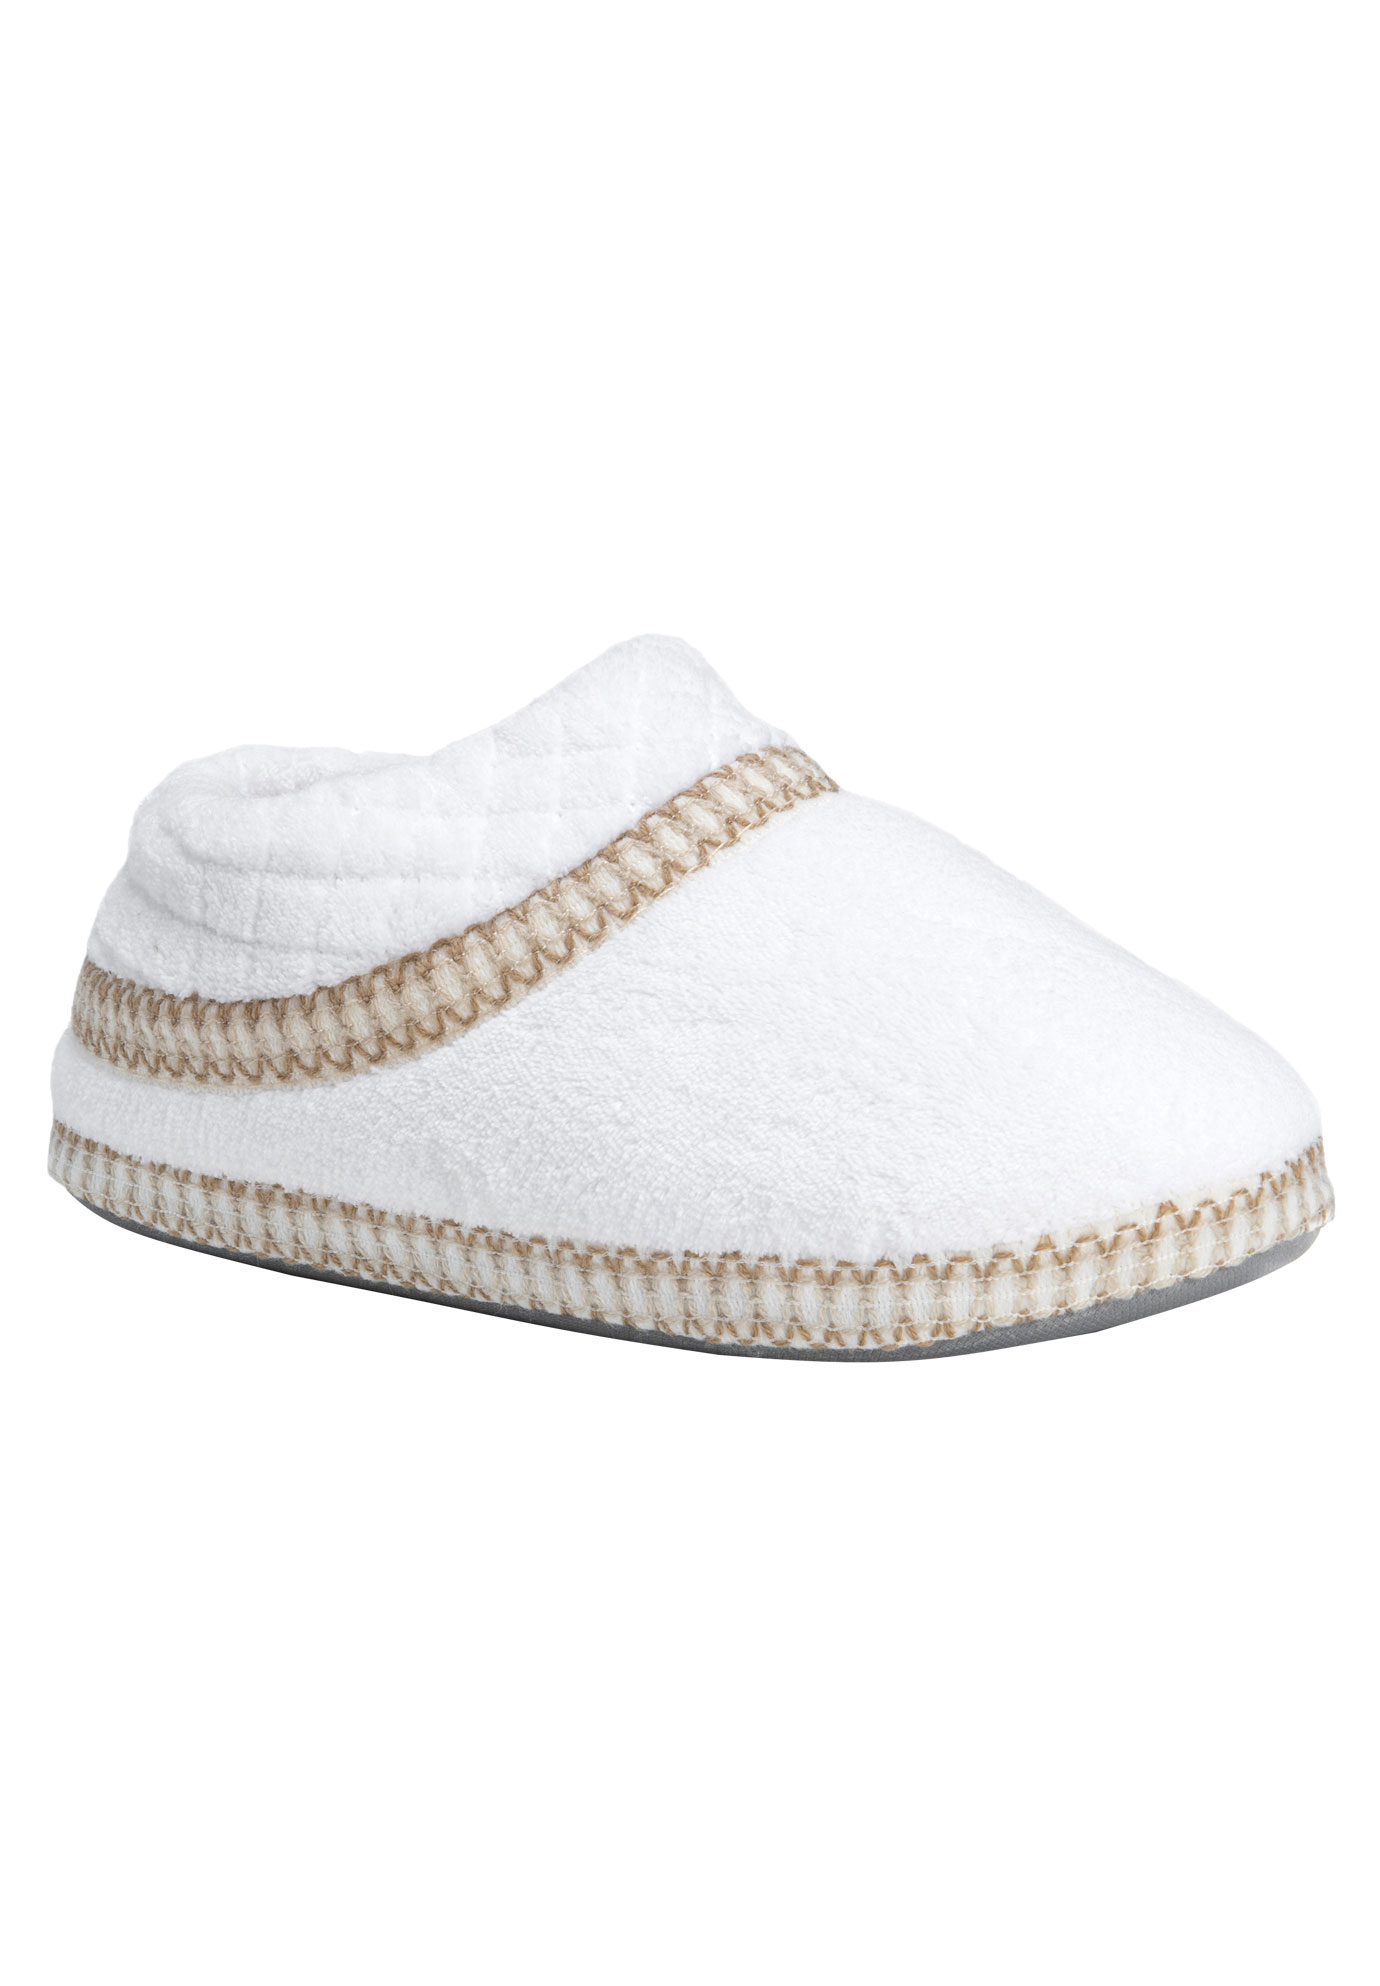 Rita Full Foot Slippers by Muk Luks®, LILY WHITE, hi-res